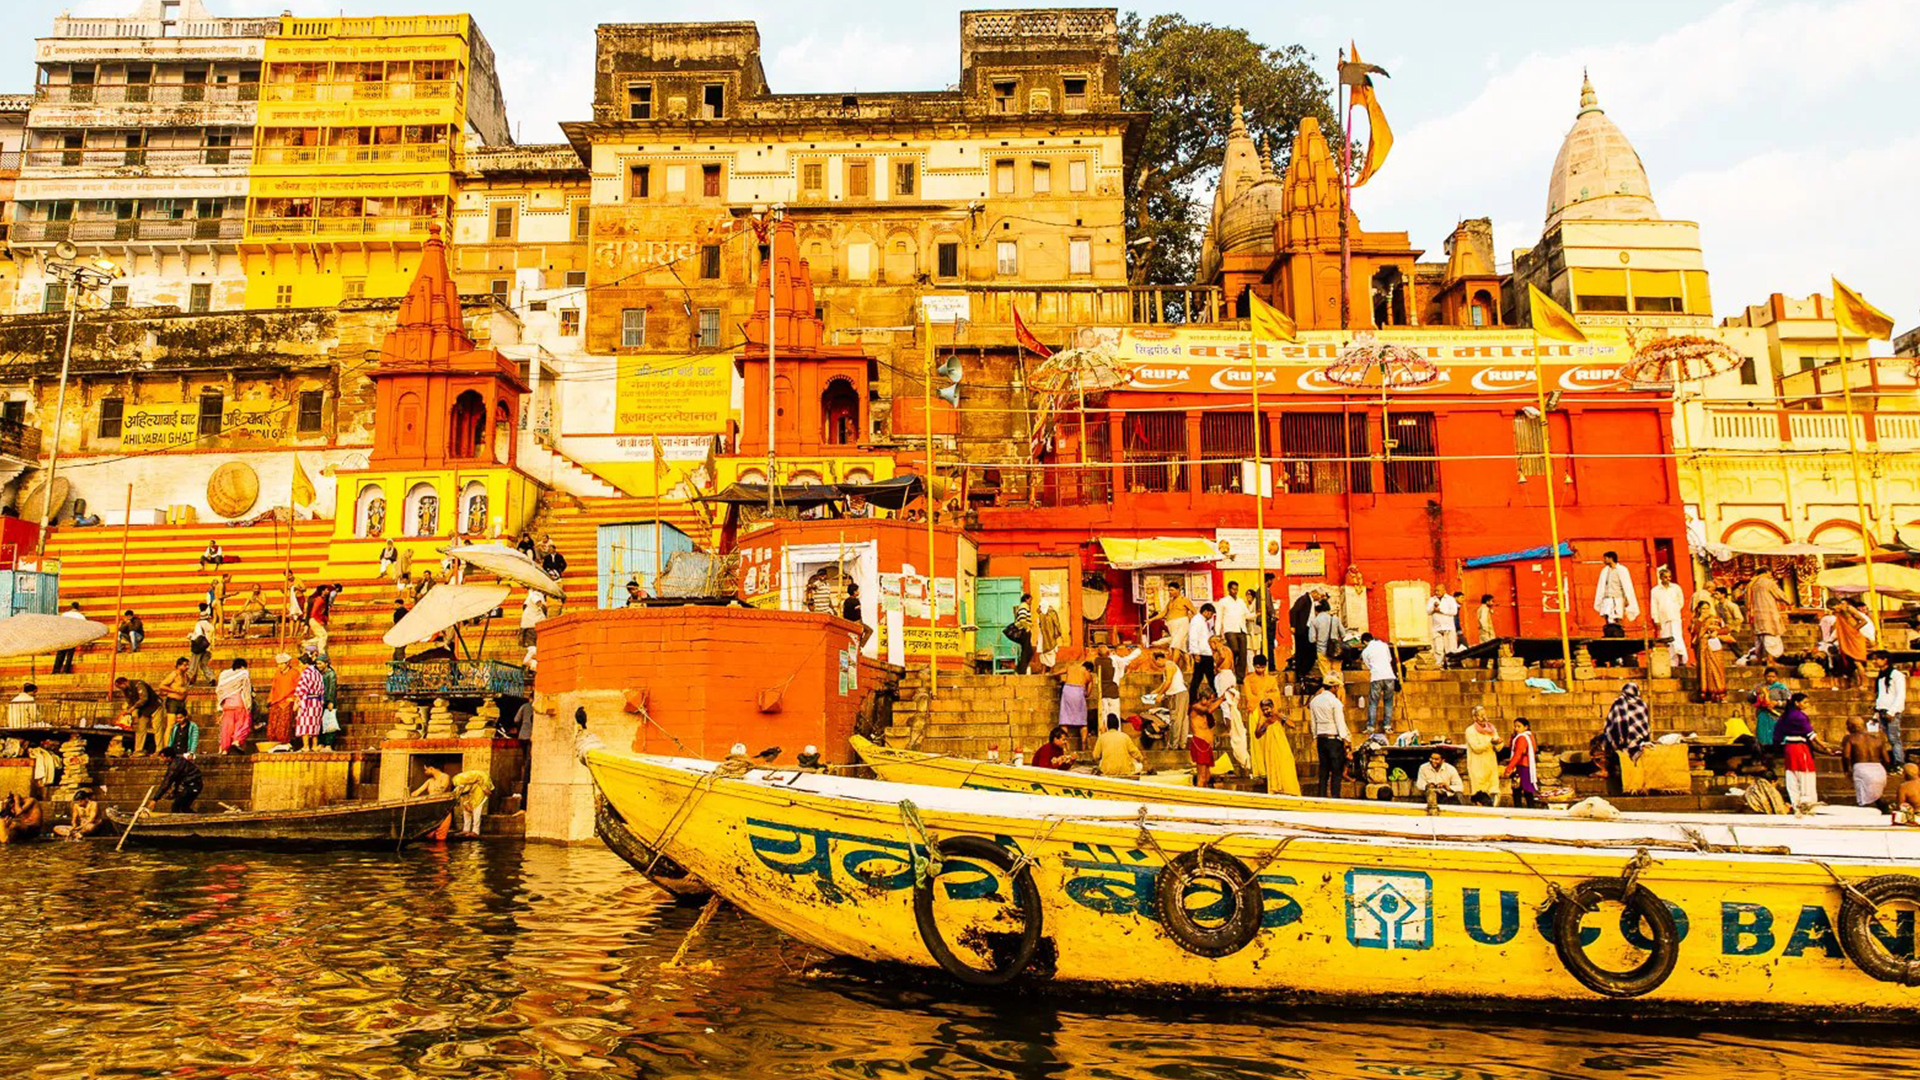 An Indian Adventure | A Documentary of Travel Photography